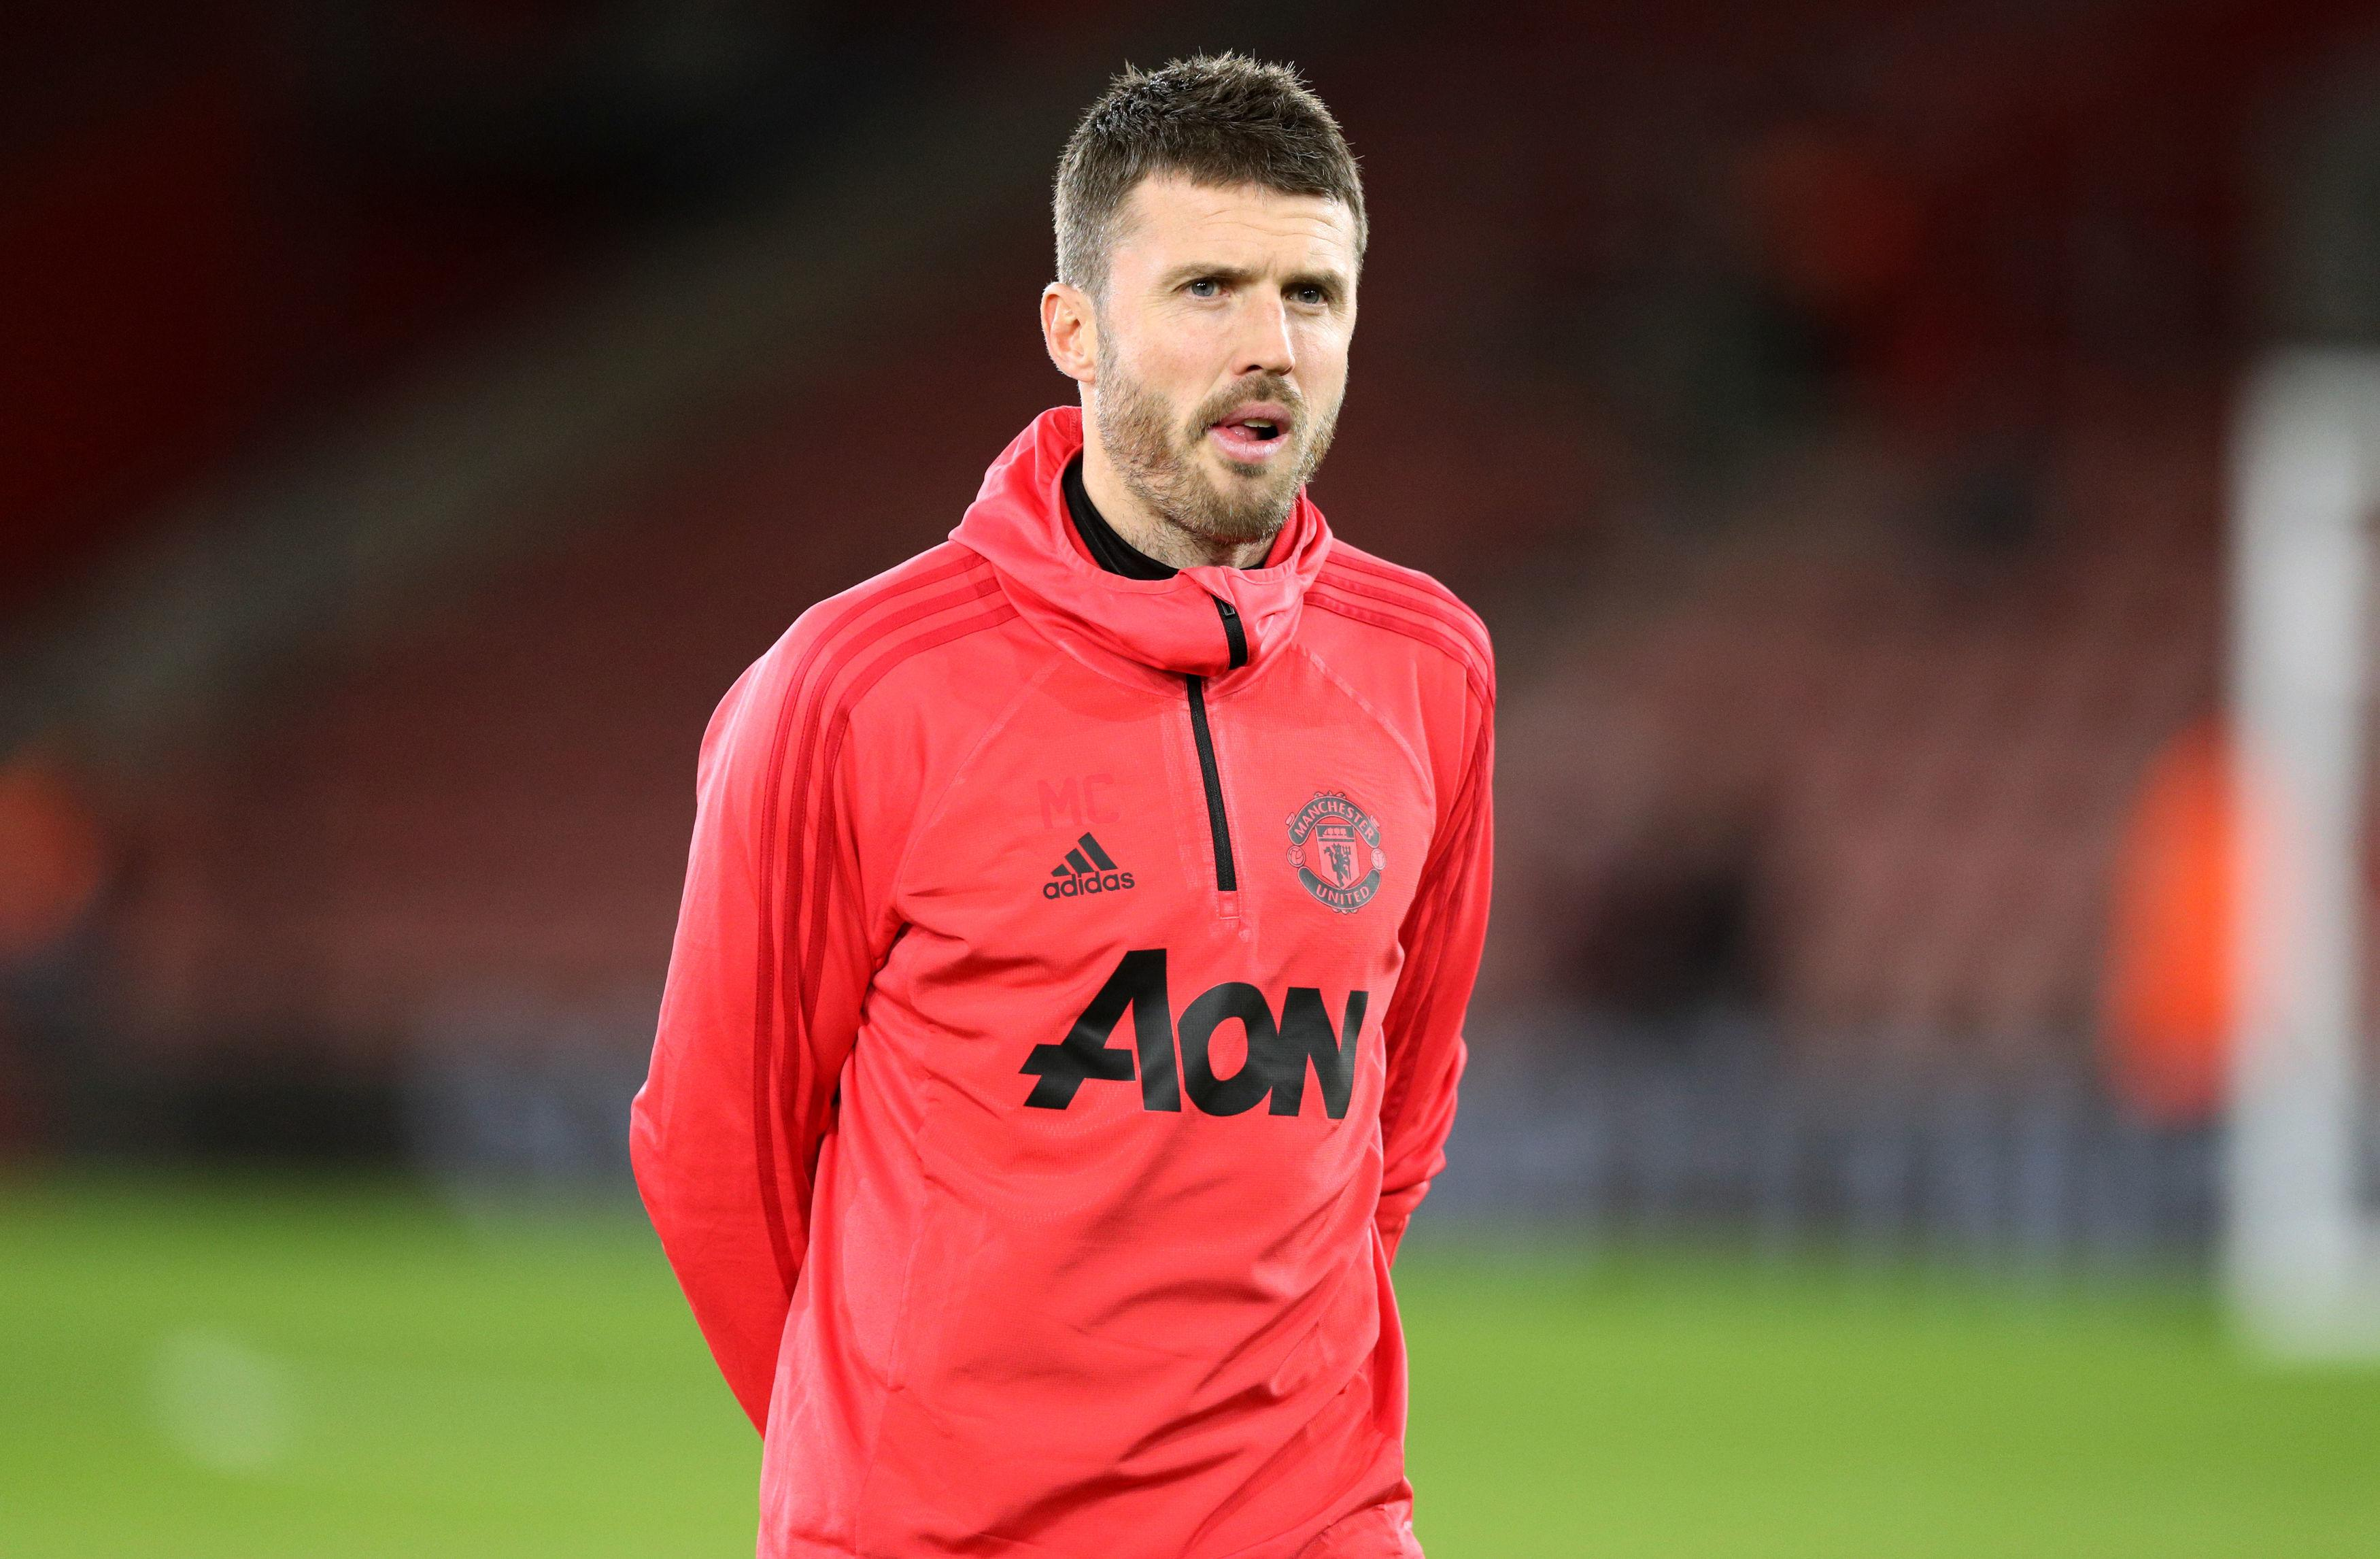 Michael Carrick put an end to Paul Pogba's gloating in training